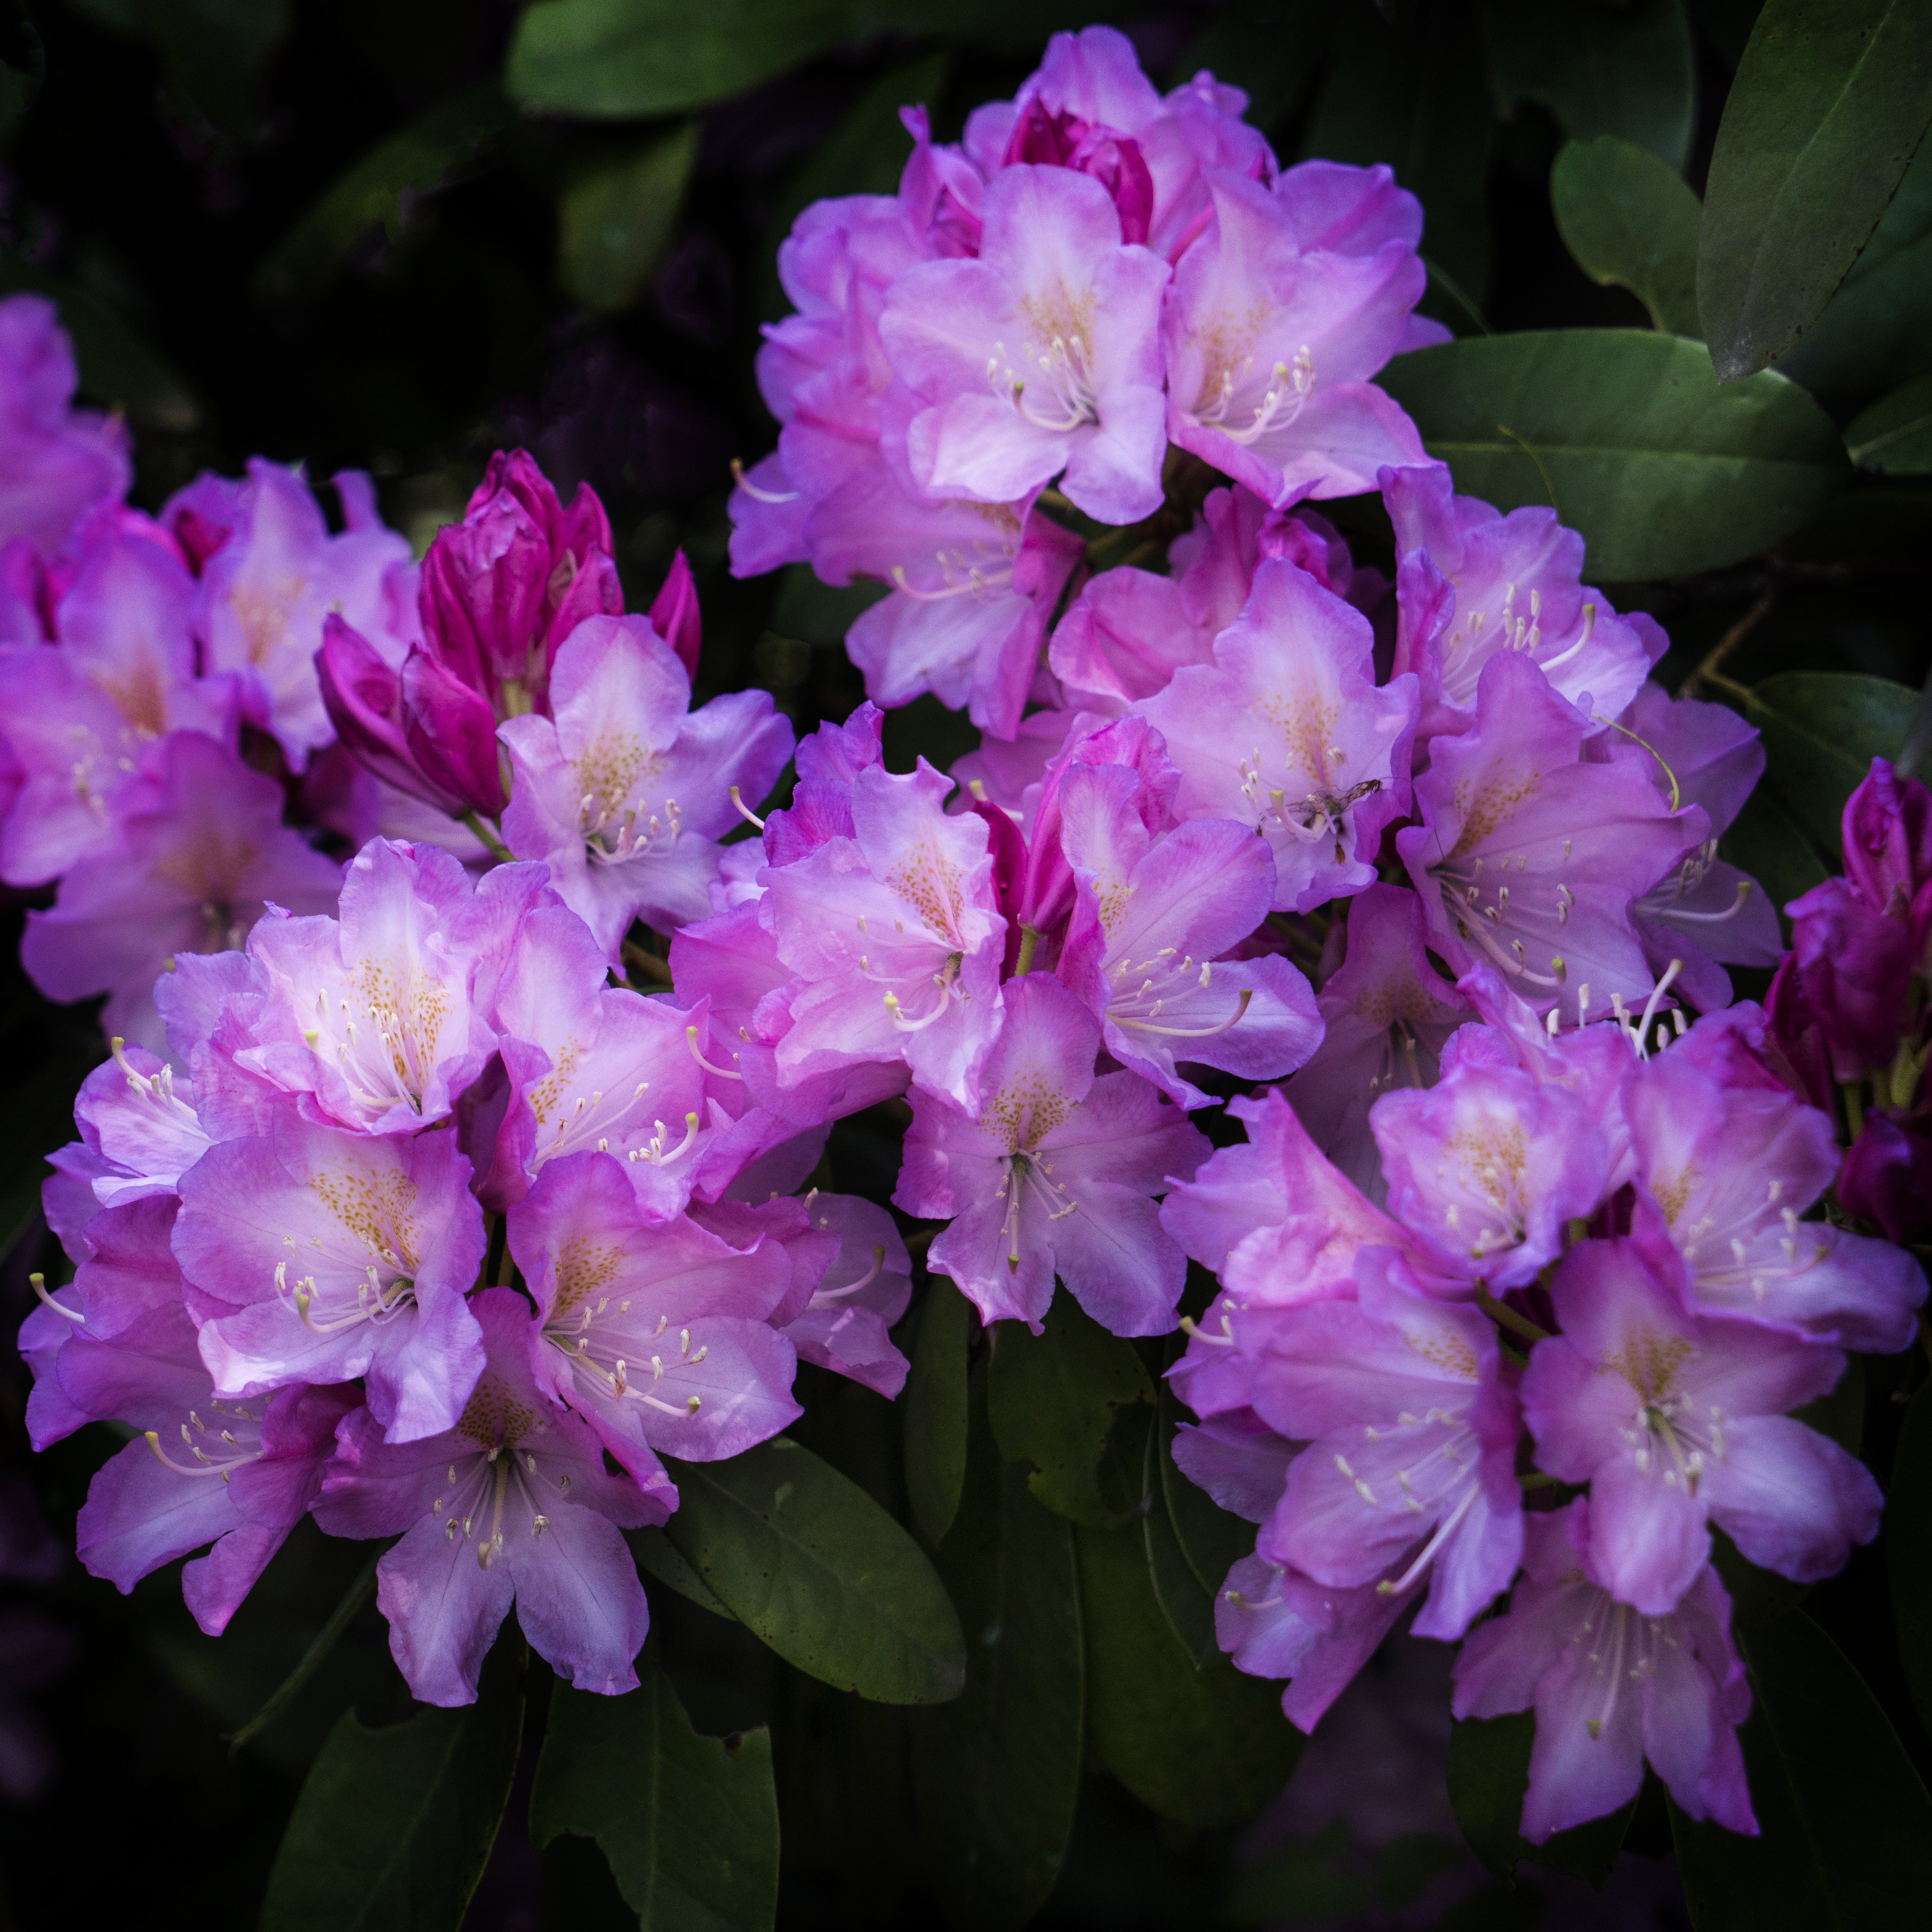 #spring, #may, #Ireland, #pennsylvania, #rhododendron, #bloom, #pink